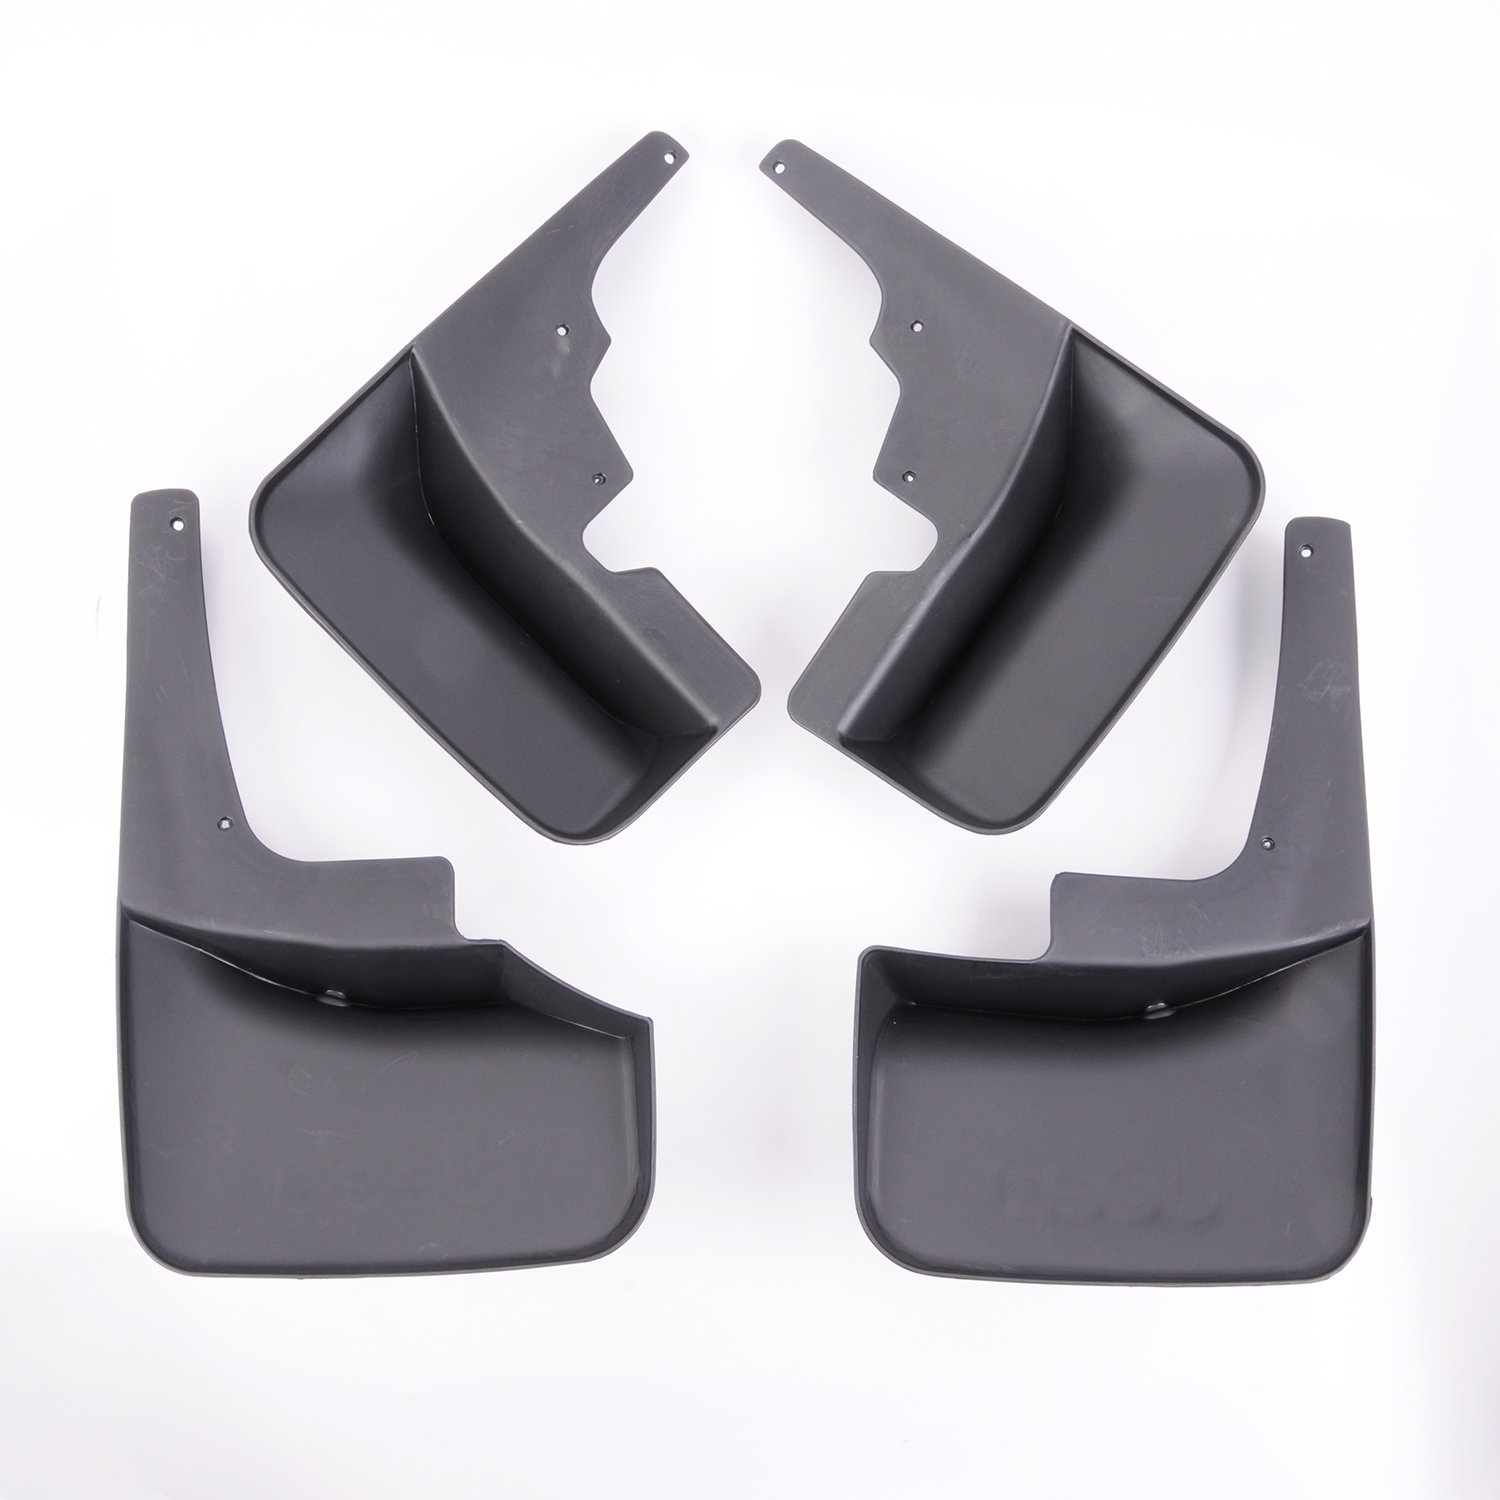 Liquor Car New for Jeep Grand Cherokee 2005 2006 2007 Front Rear Mud Flaps Mudflaps Splash Guards Set Kit